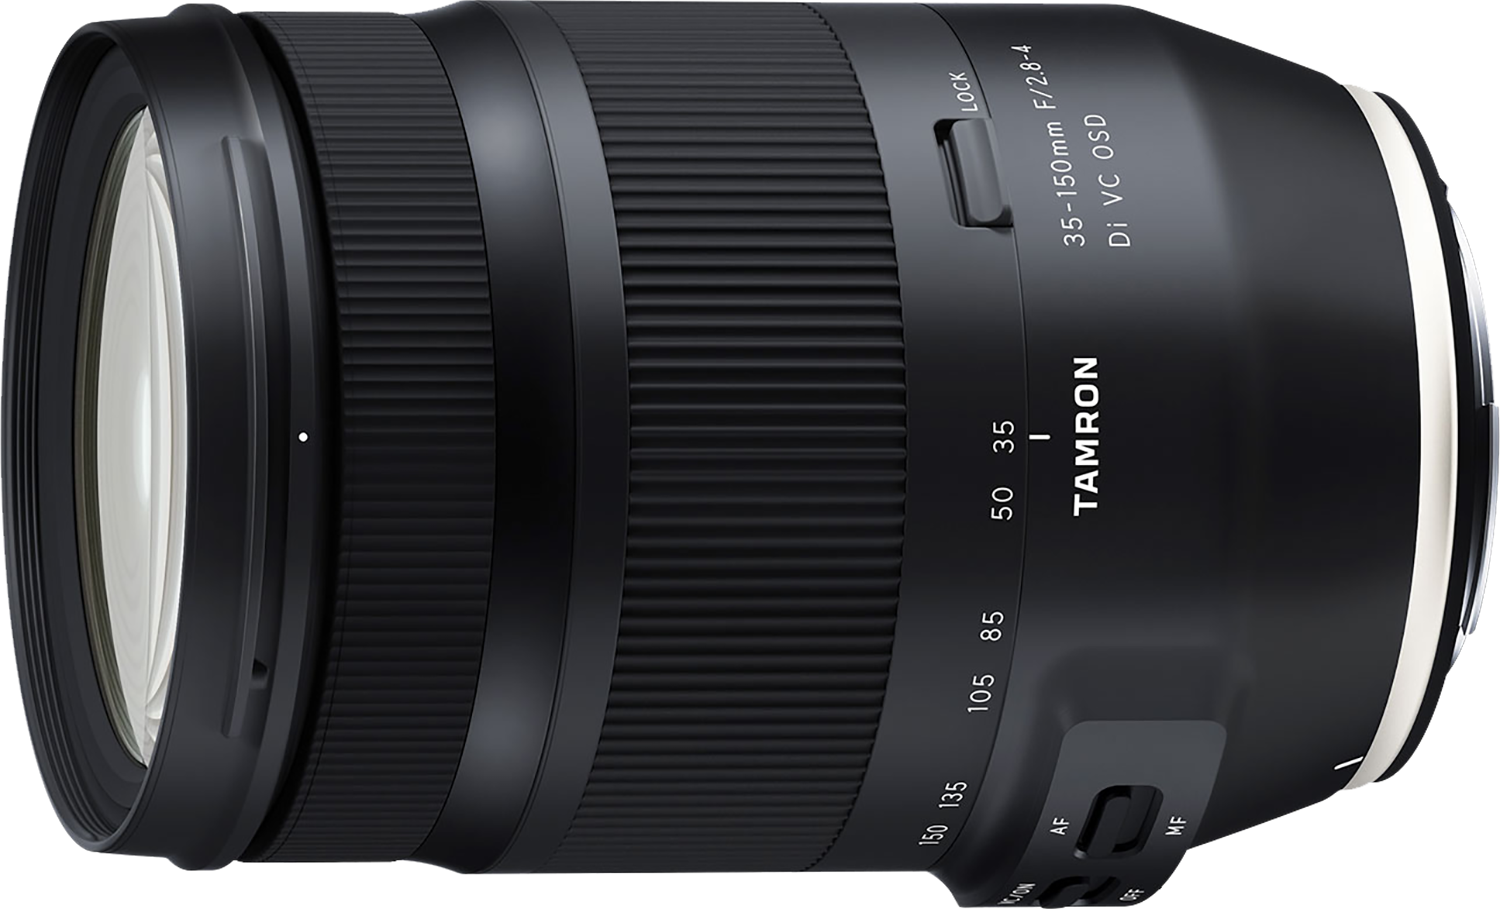 Tamron 35-150mm F2.8-4 Di VC OSD: Digital Photography Review